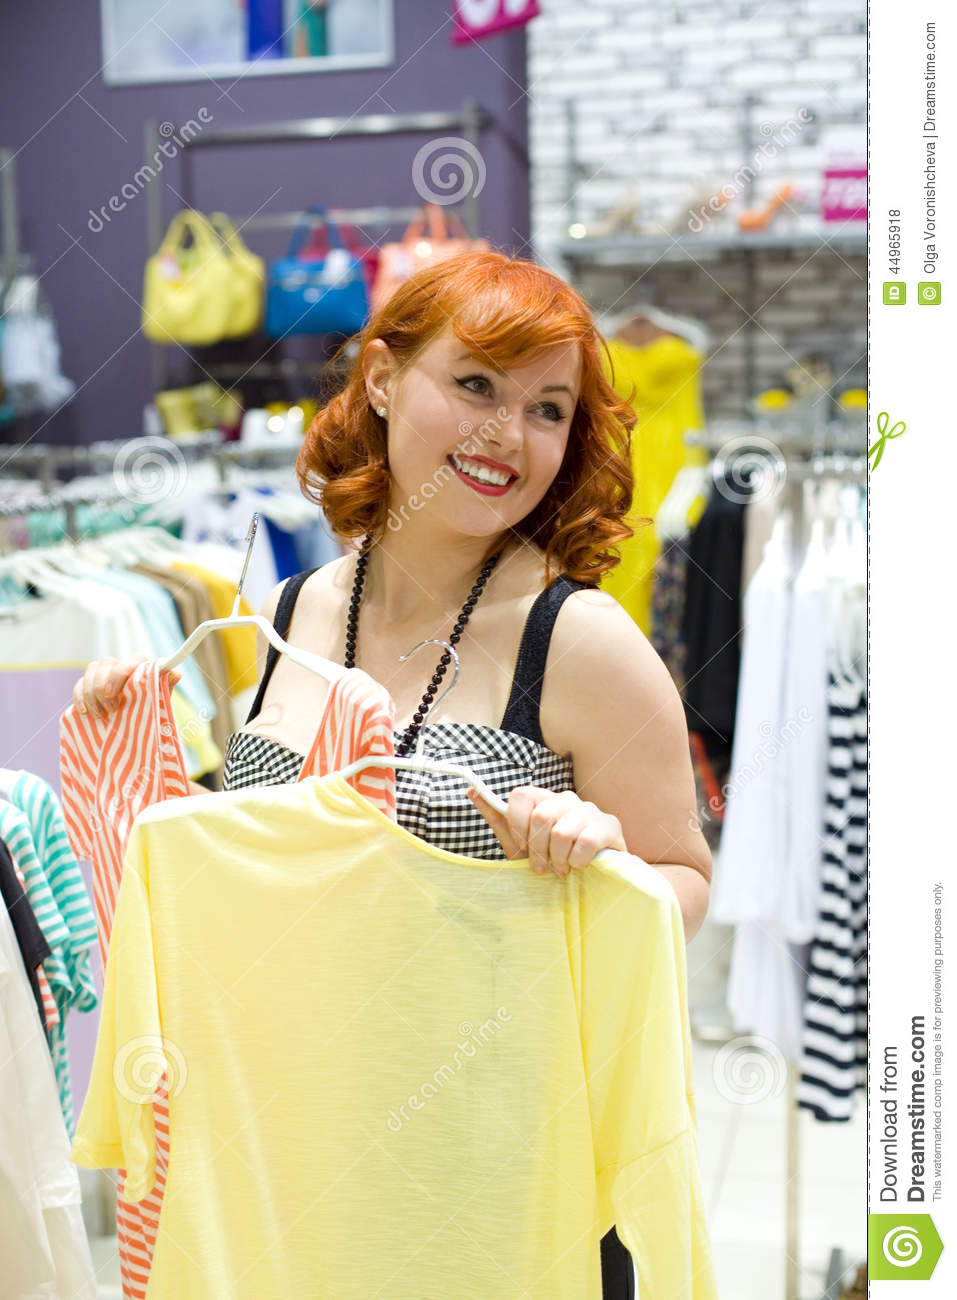 Pin-up girl is shopping in a clothing store